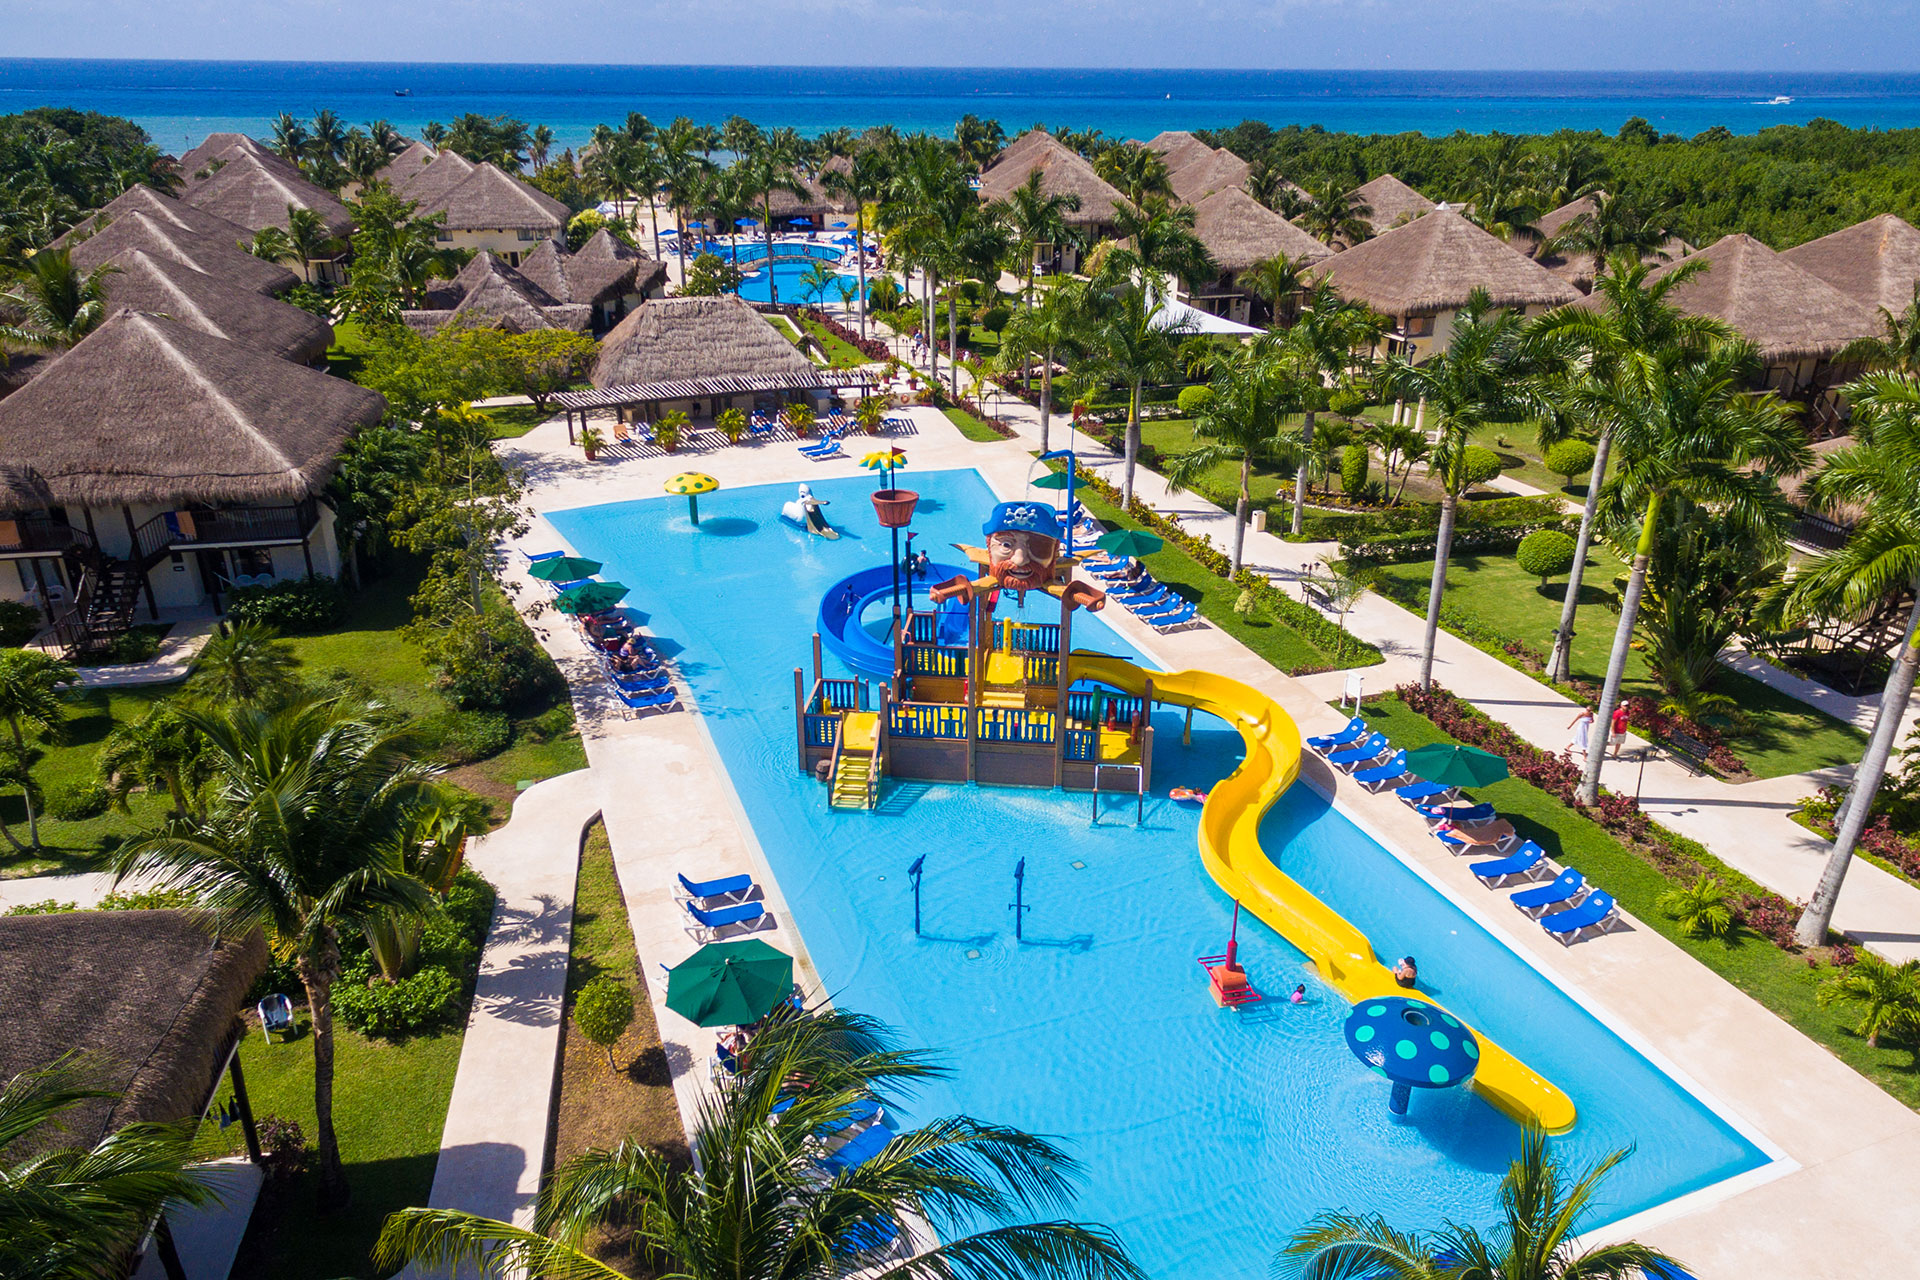 Water Park at Allegro Cozumel in Mexico; Courtesy of Allegro Cozumel